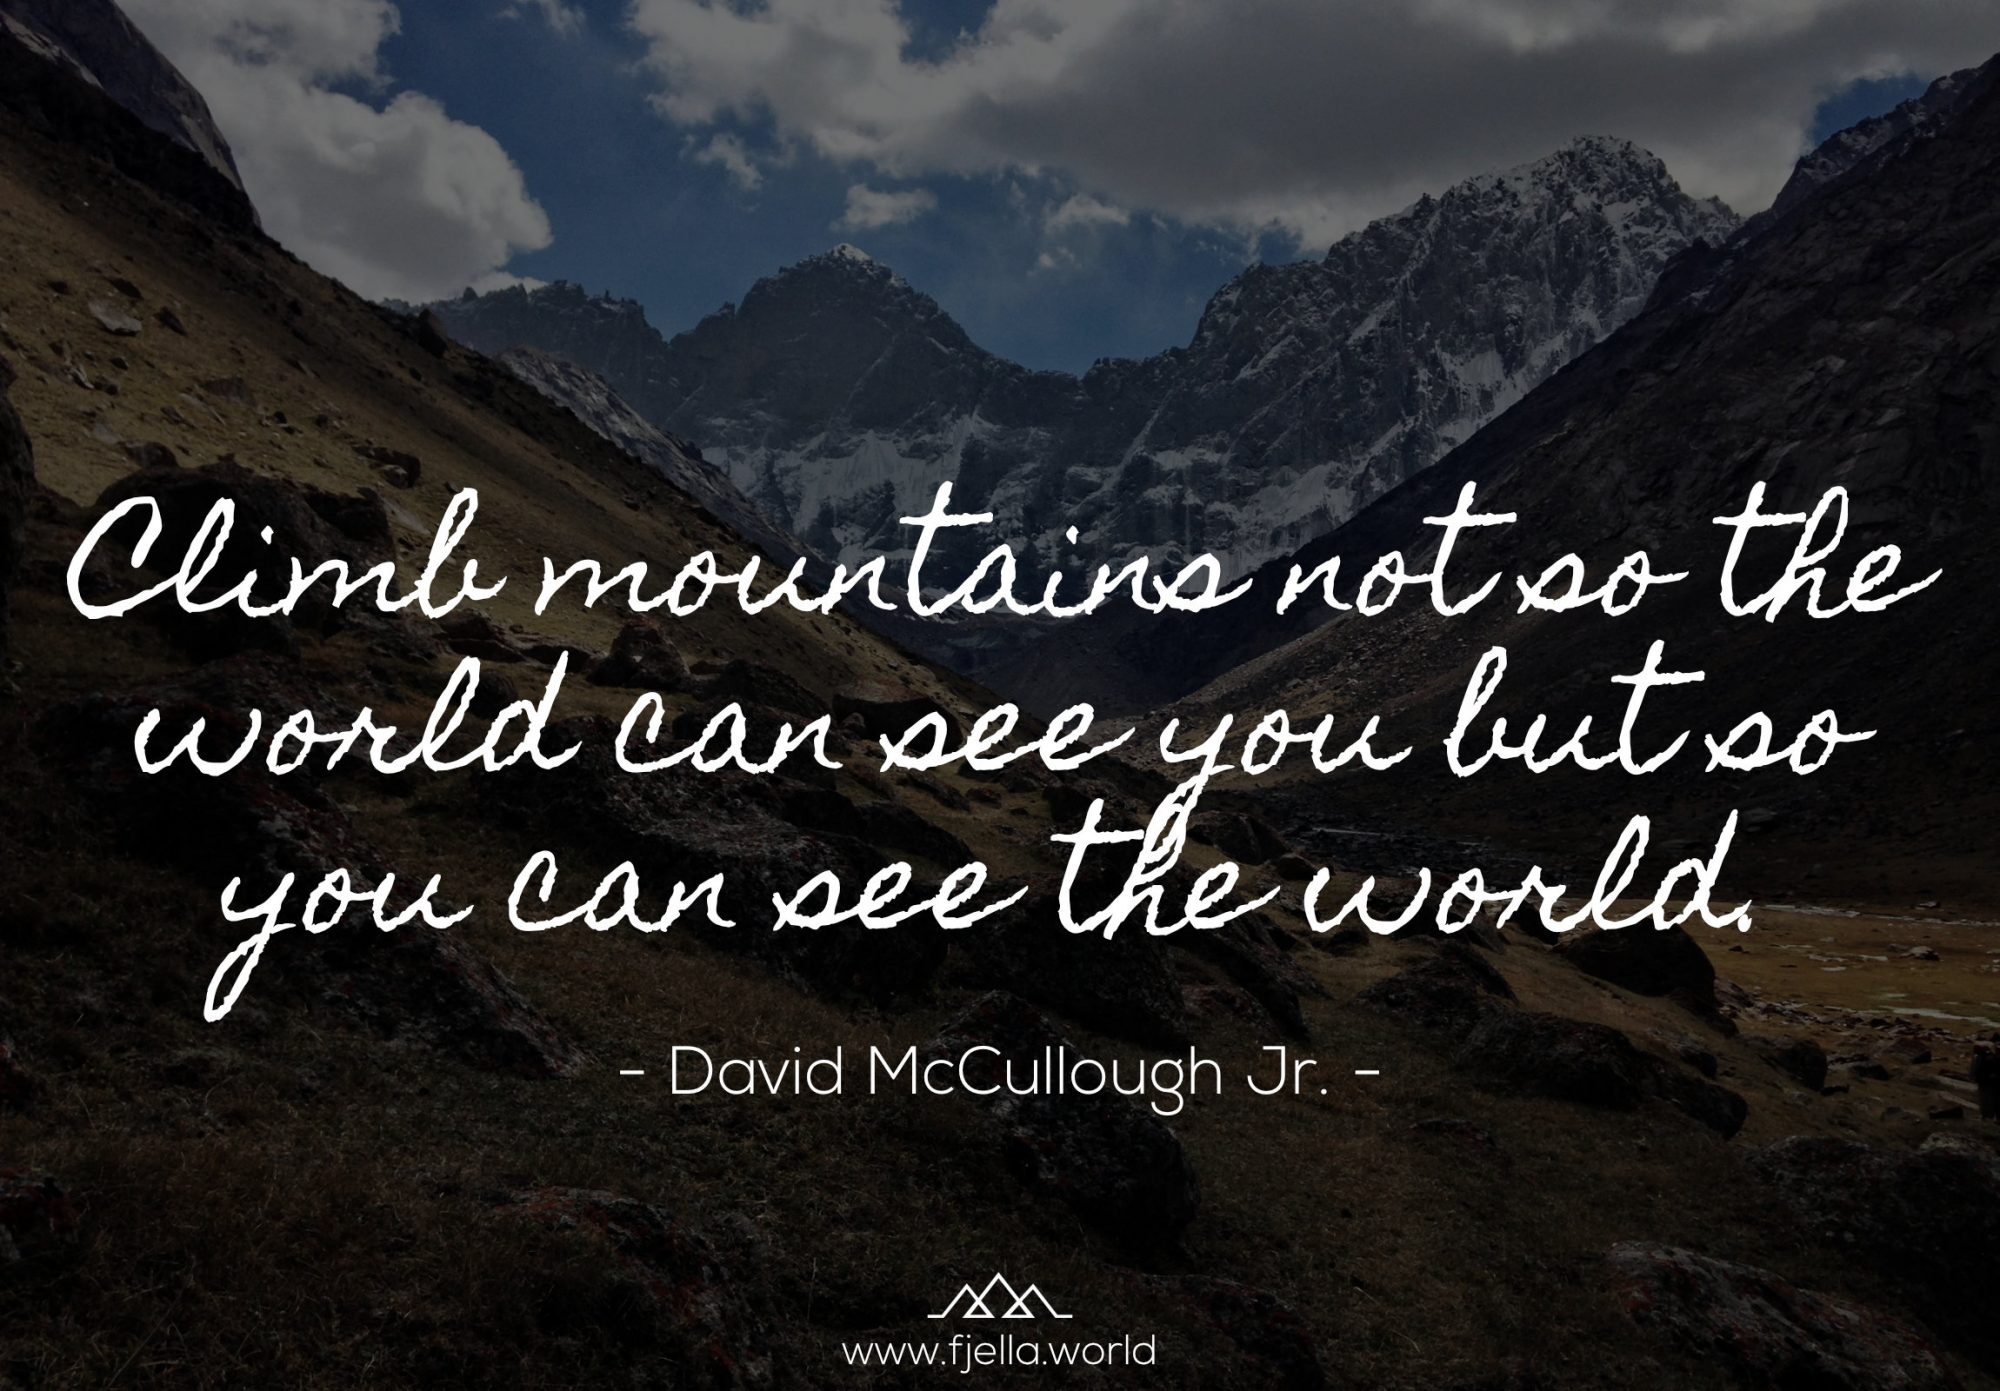 Climb mountains not so the world can see you but so you can see the world